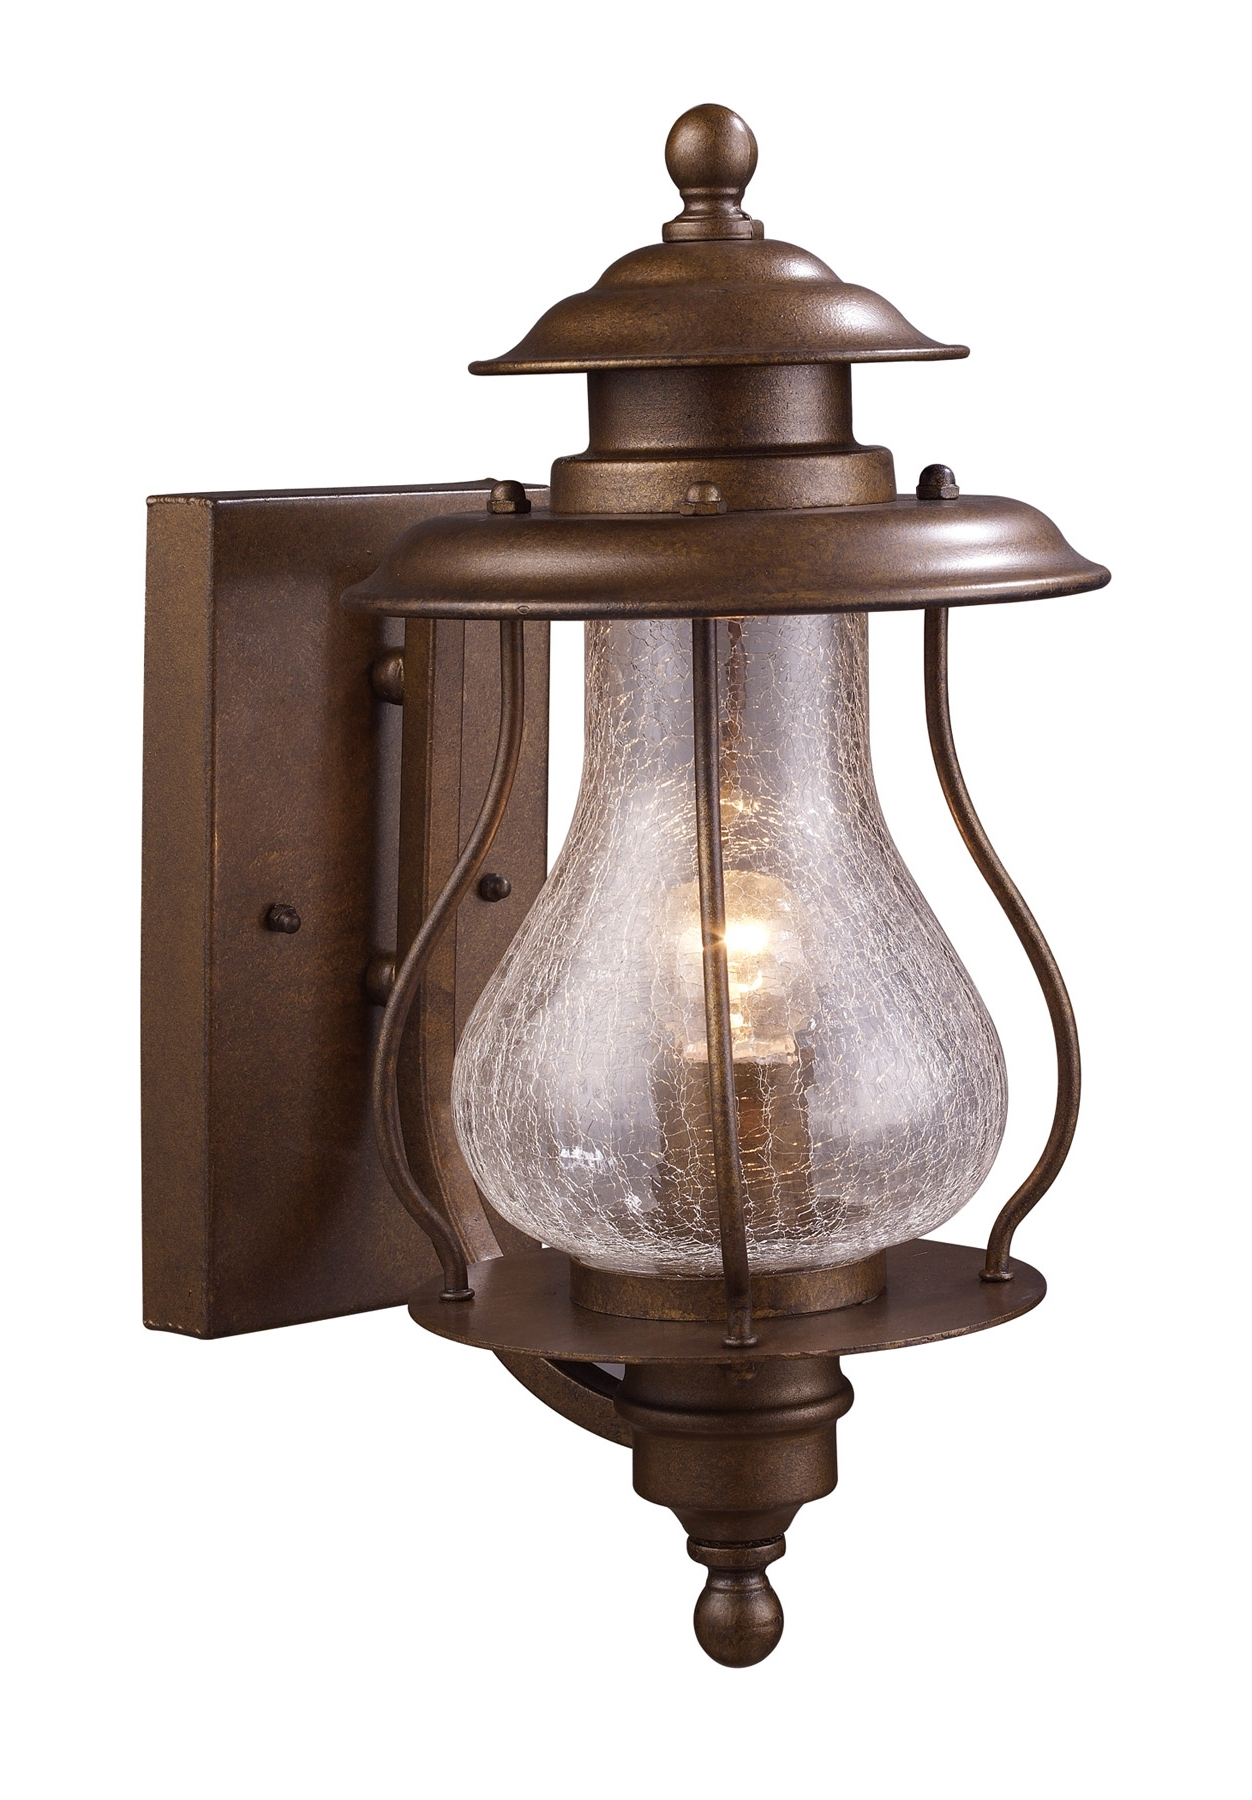 Lighting 62005 1 Wikshire Outdoor Wall Mount Lantern With Widely Used Outdoor Wall Lantern Lights (View 10 of 20)